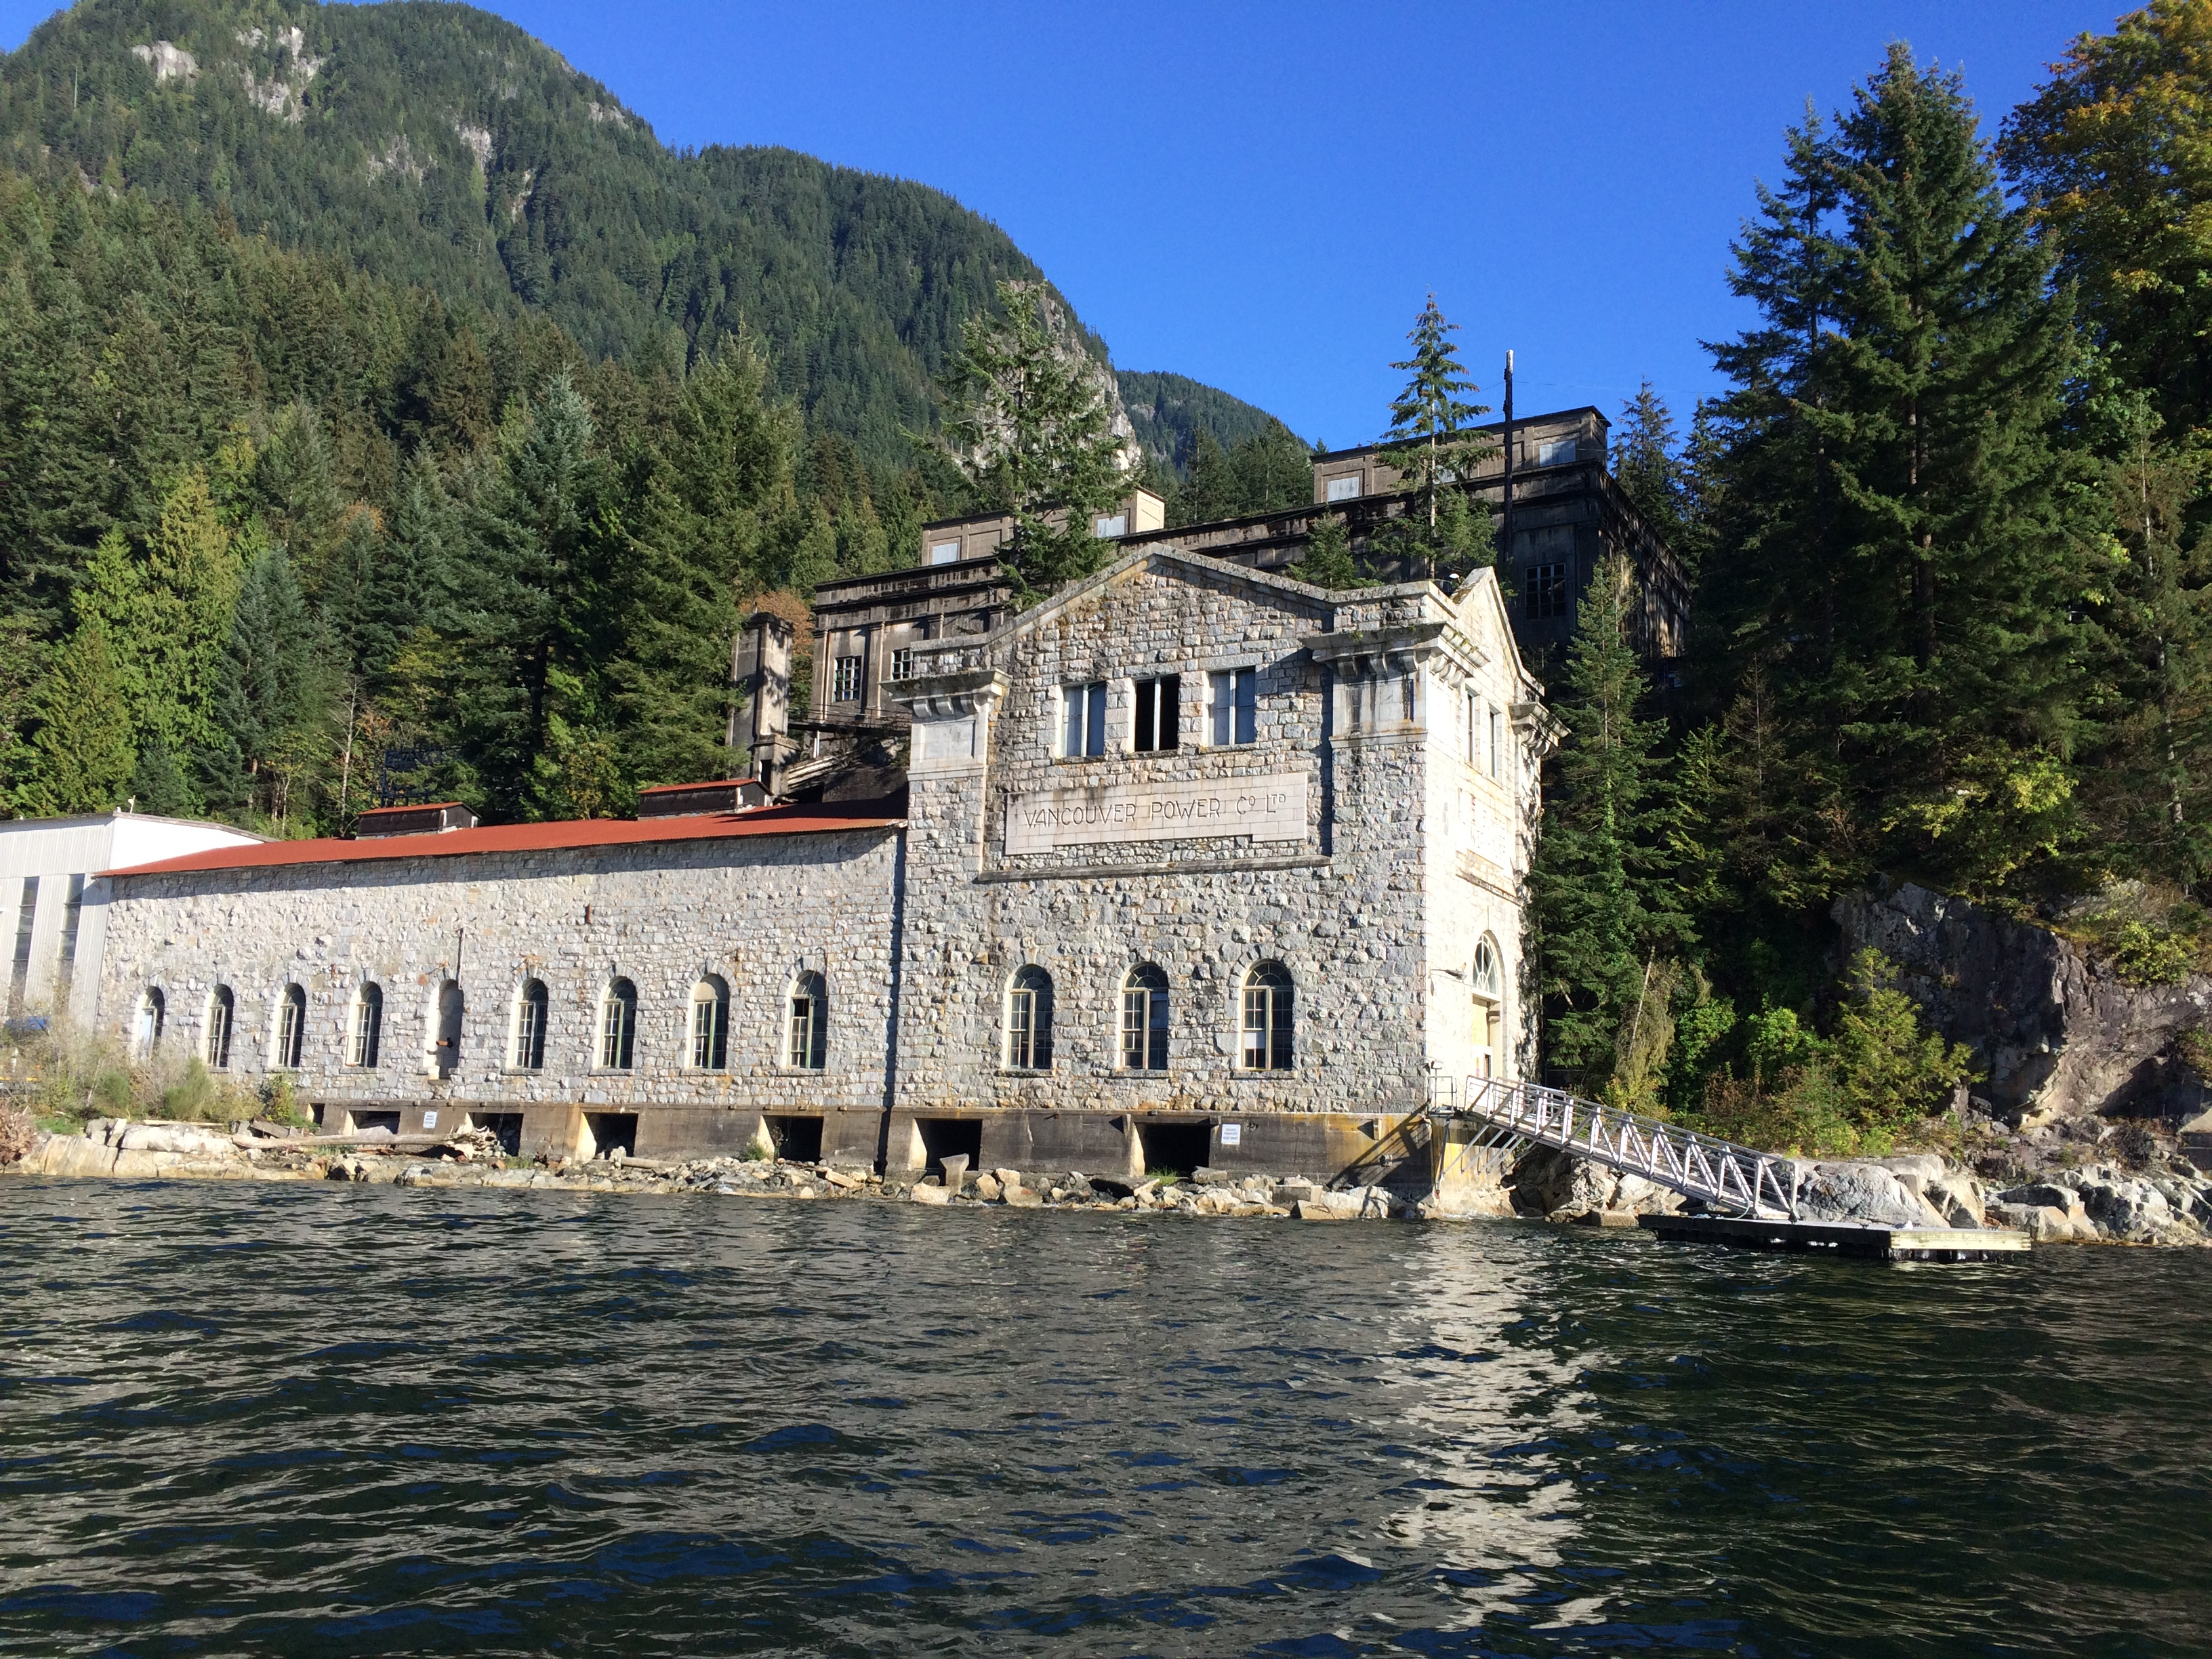 The 2 hour private boat charter with Captain Griff offers over 30 years of experience on the waters of Indian Arm where he will share some of the most picturesque landscapes of a glacial fjord, local historic sites and amazing wildlife.